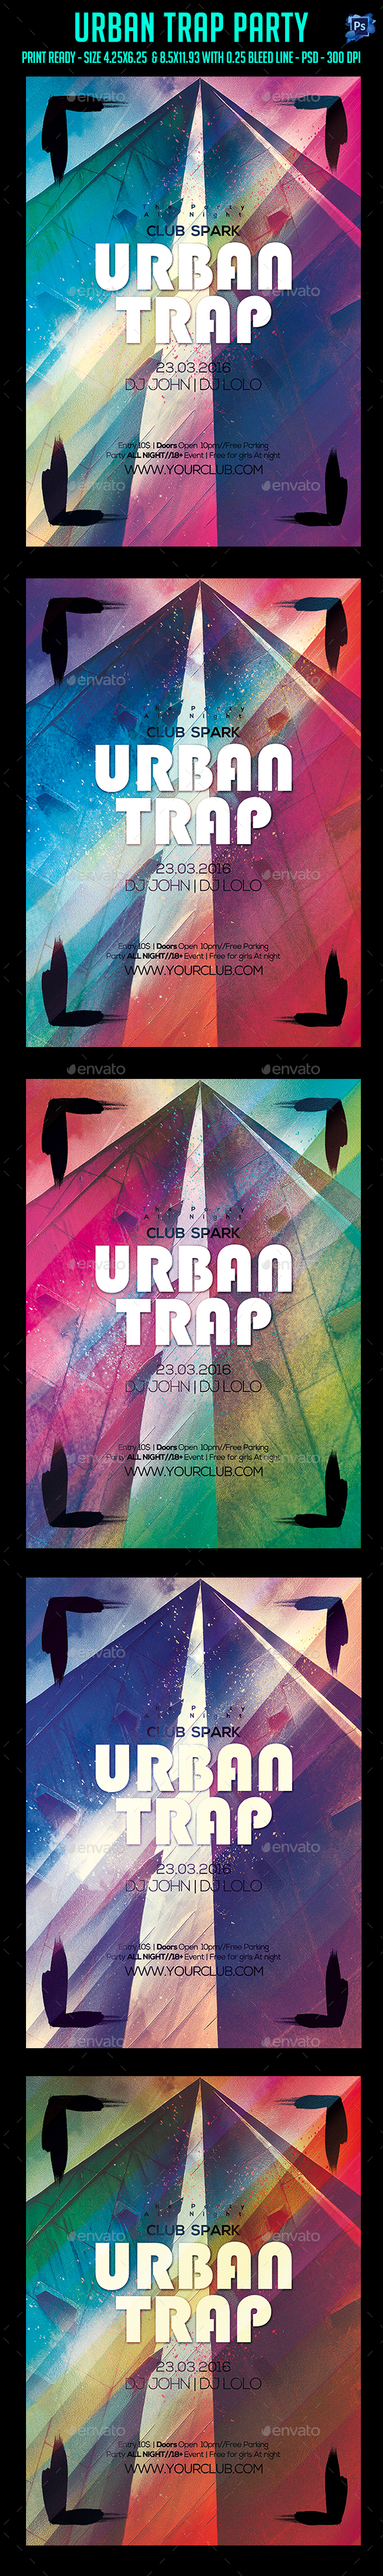 Urban Trap Party Flyer